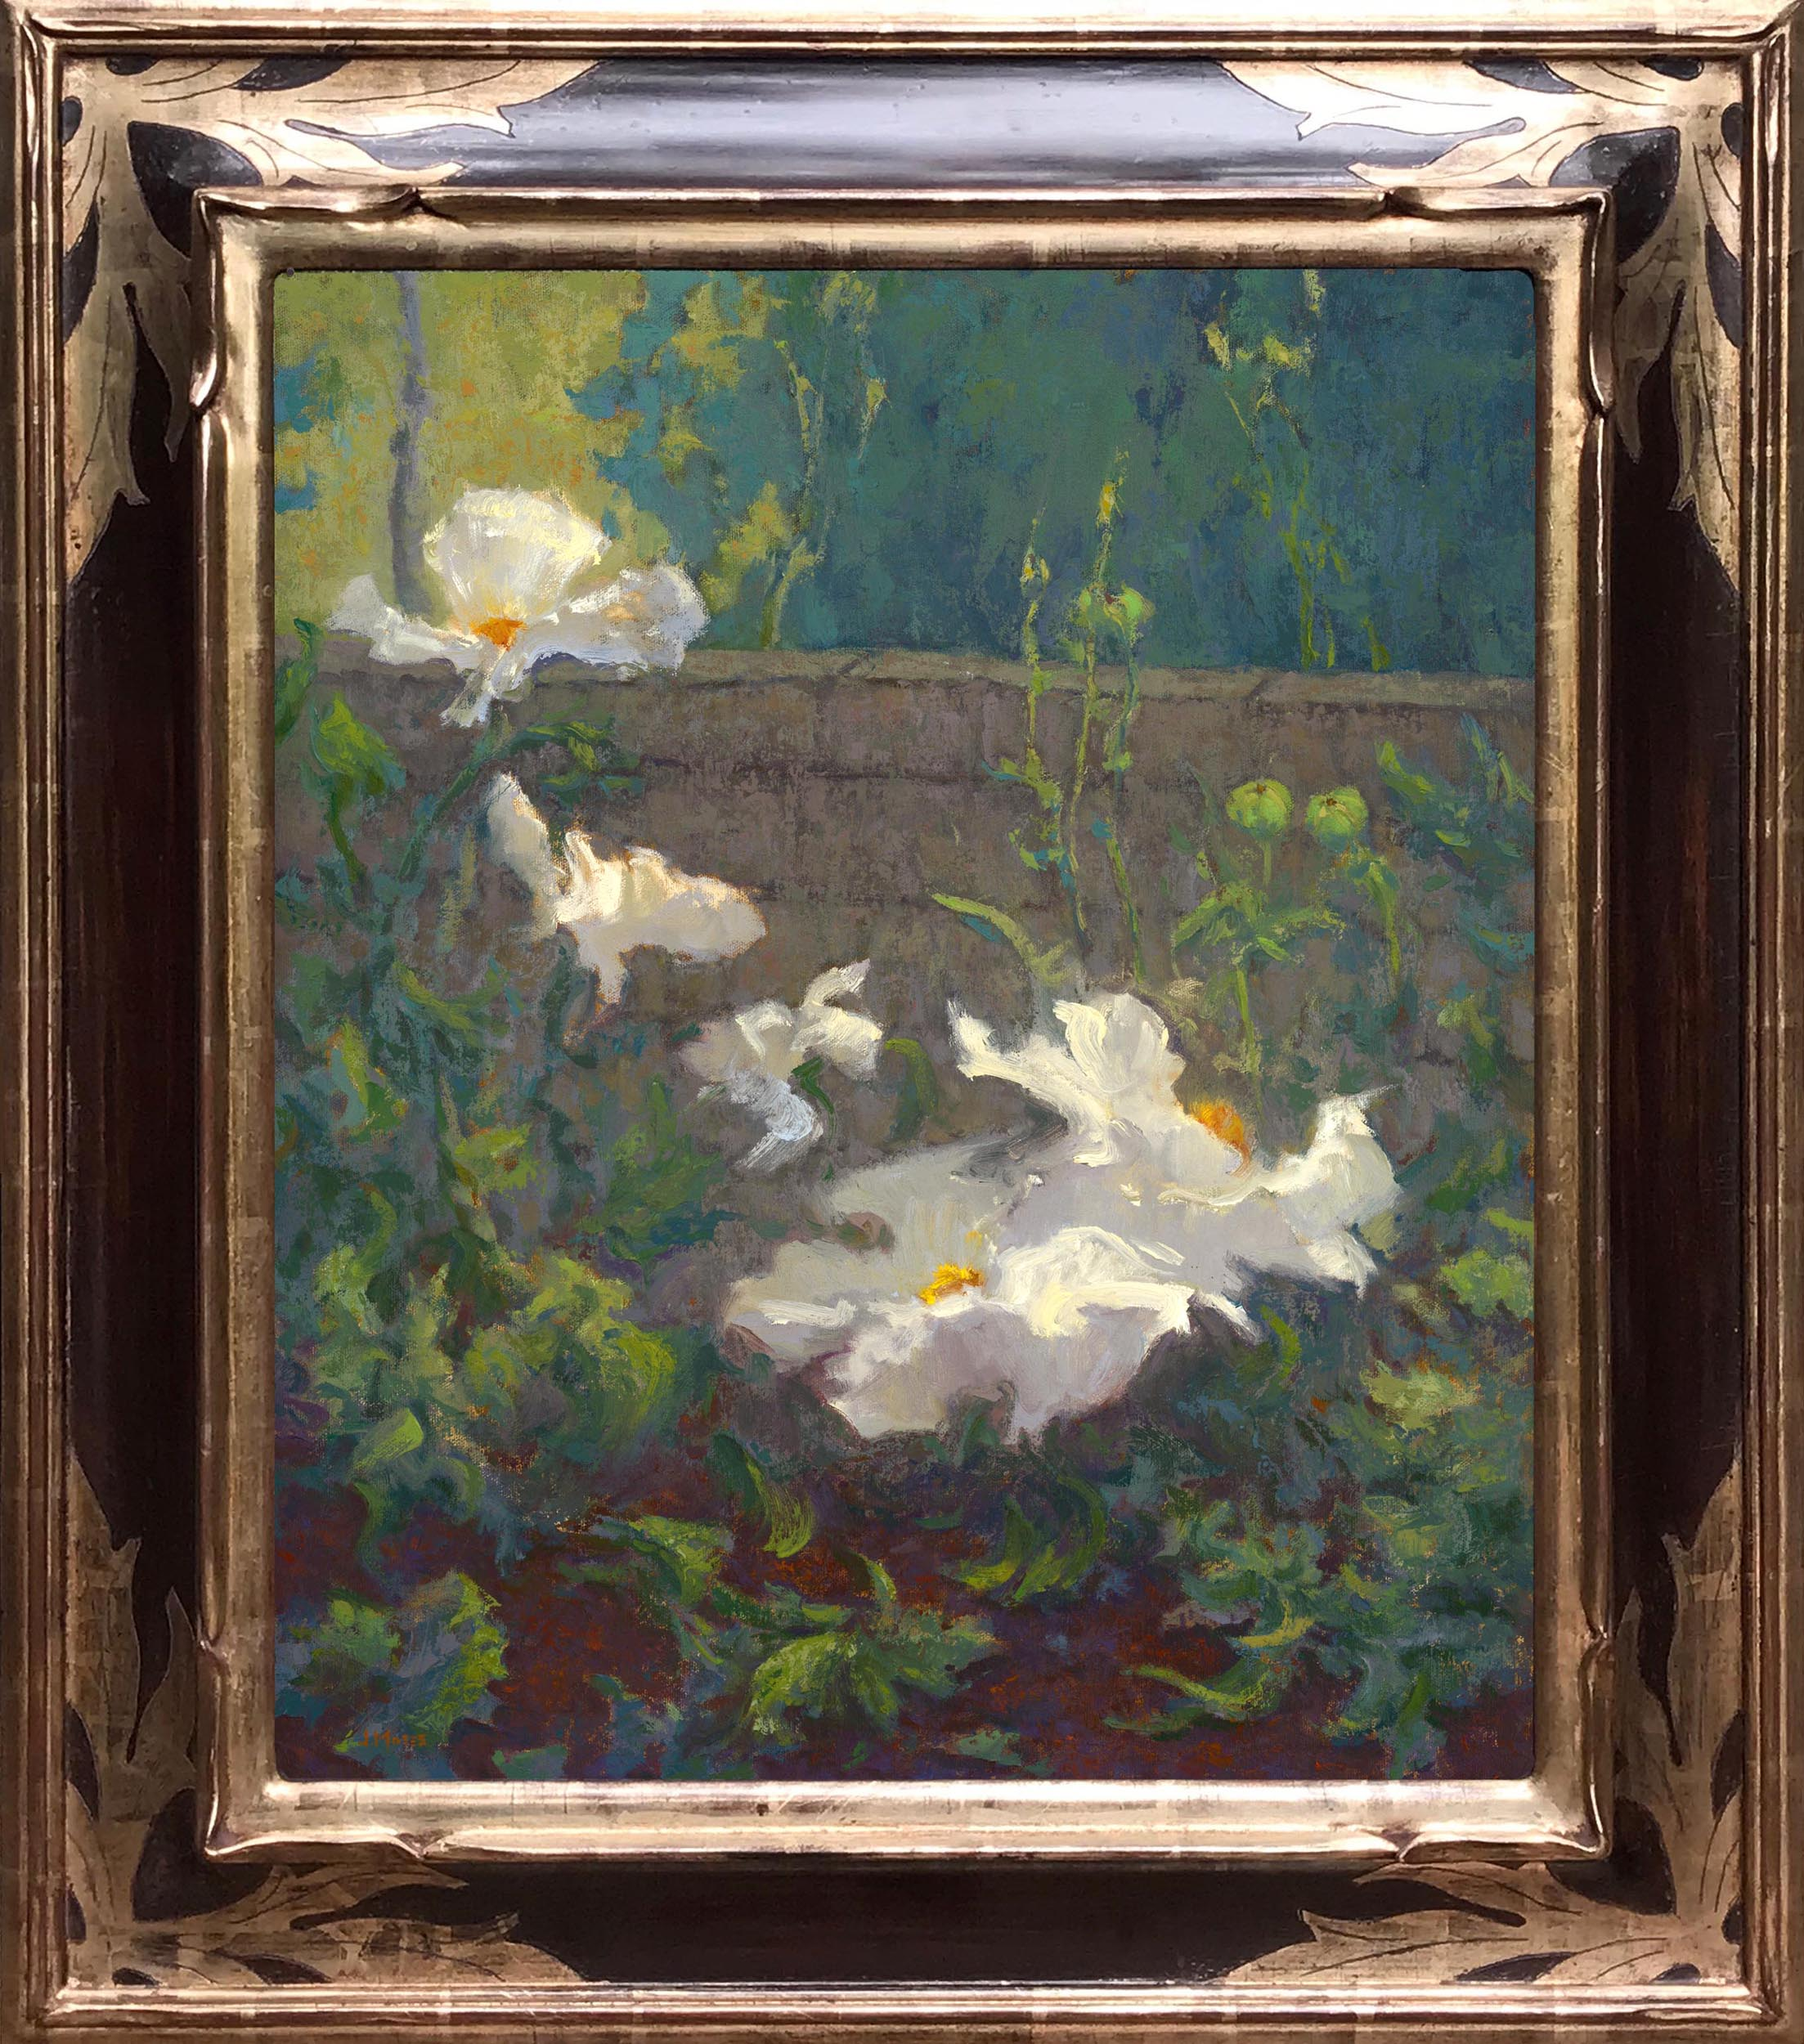 Matilija Poppies, Spring Bloom / 24 x 20 inches / oil on canvas panel